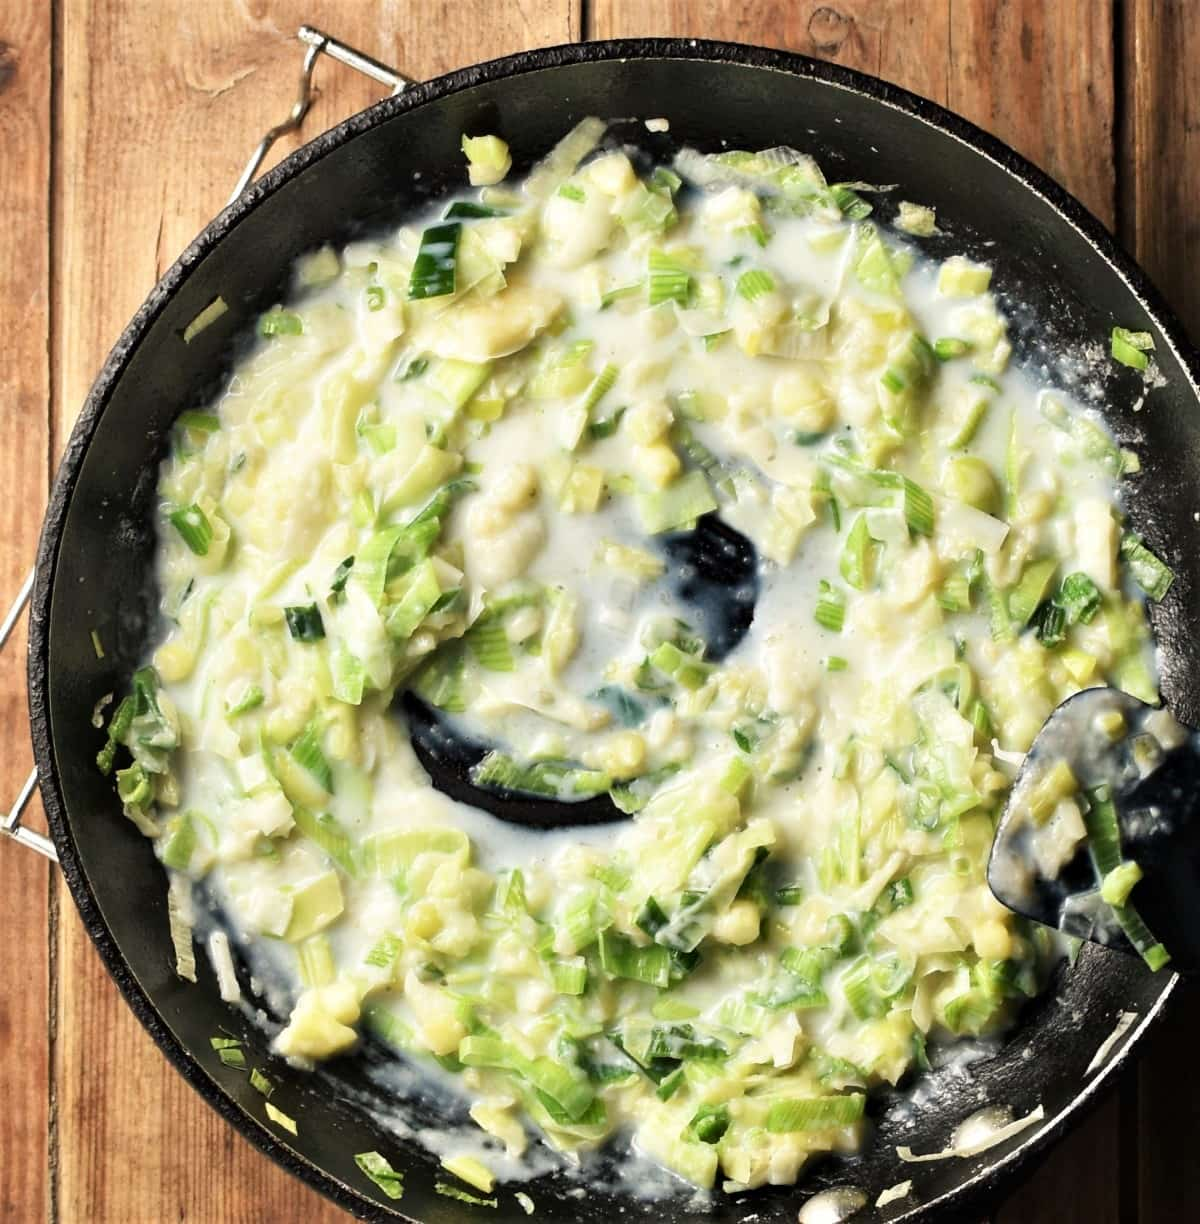 Chopped leek in creamy white sauce in pan.